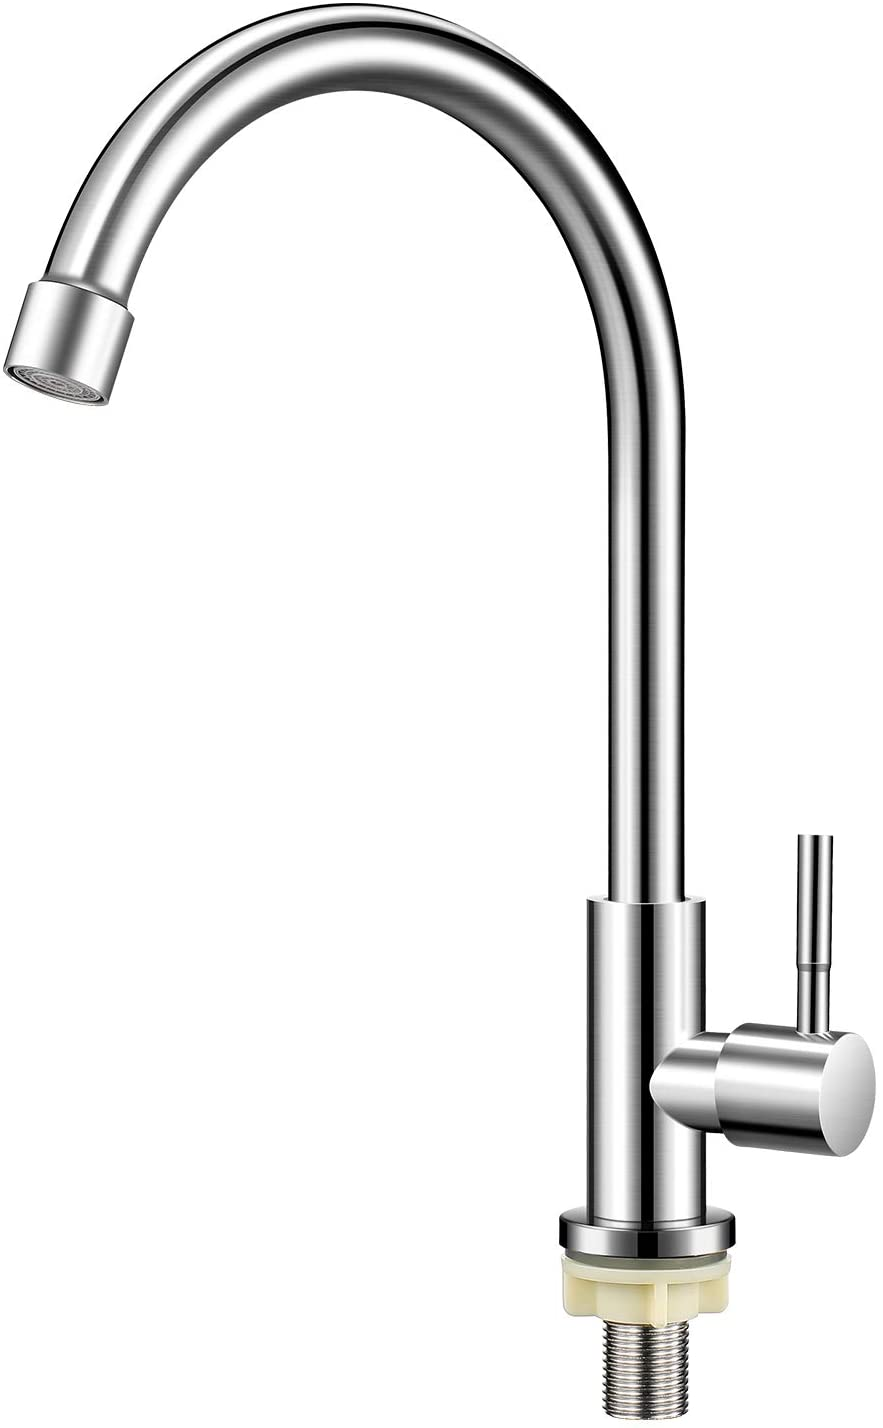 Stainless Steel Kitchen Faucet Single Handle Single Hole High Arc Cold Water Sink Faucet for Kitchen,Bathroom,Outdoor Garden and Bar.(Free Cold Water Supply Lines)